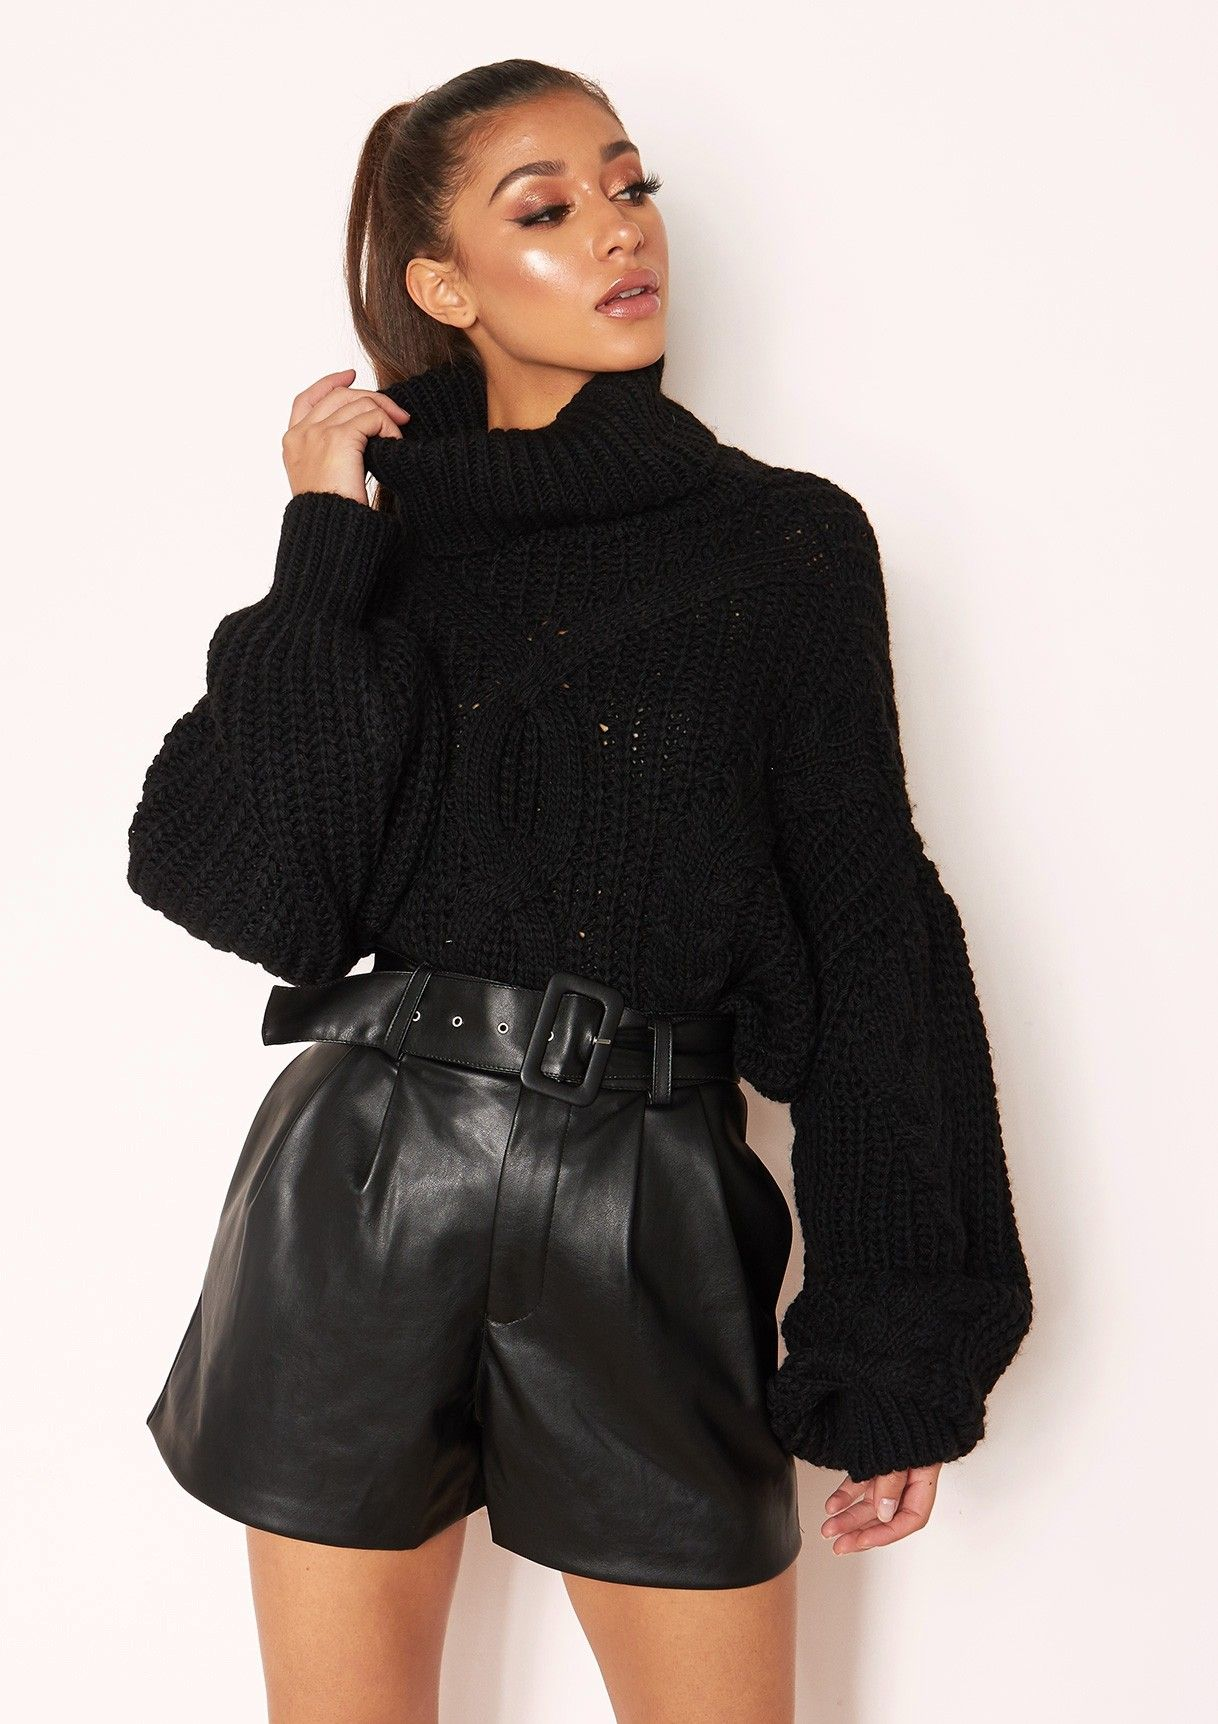 d5f6decefb Missyempire - Emily Black Faux Leather Belted Shorts. Missyempire - Hana  Black Cable Knit Roll Neck Jumper ...